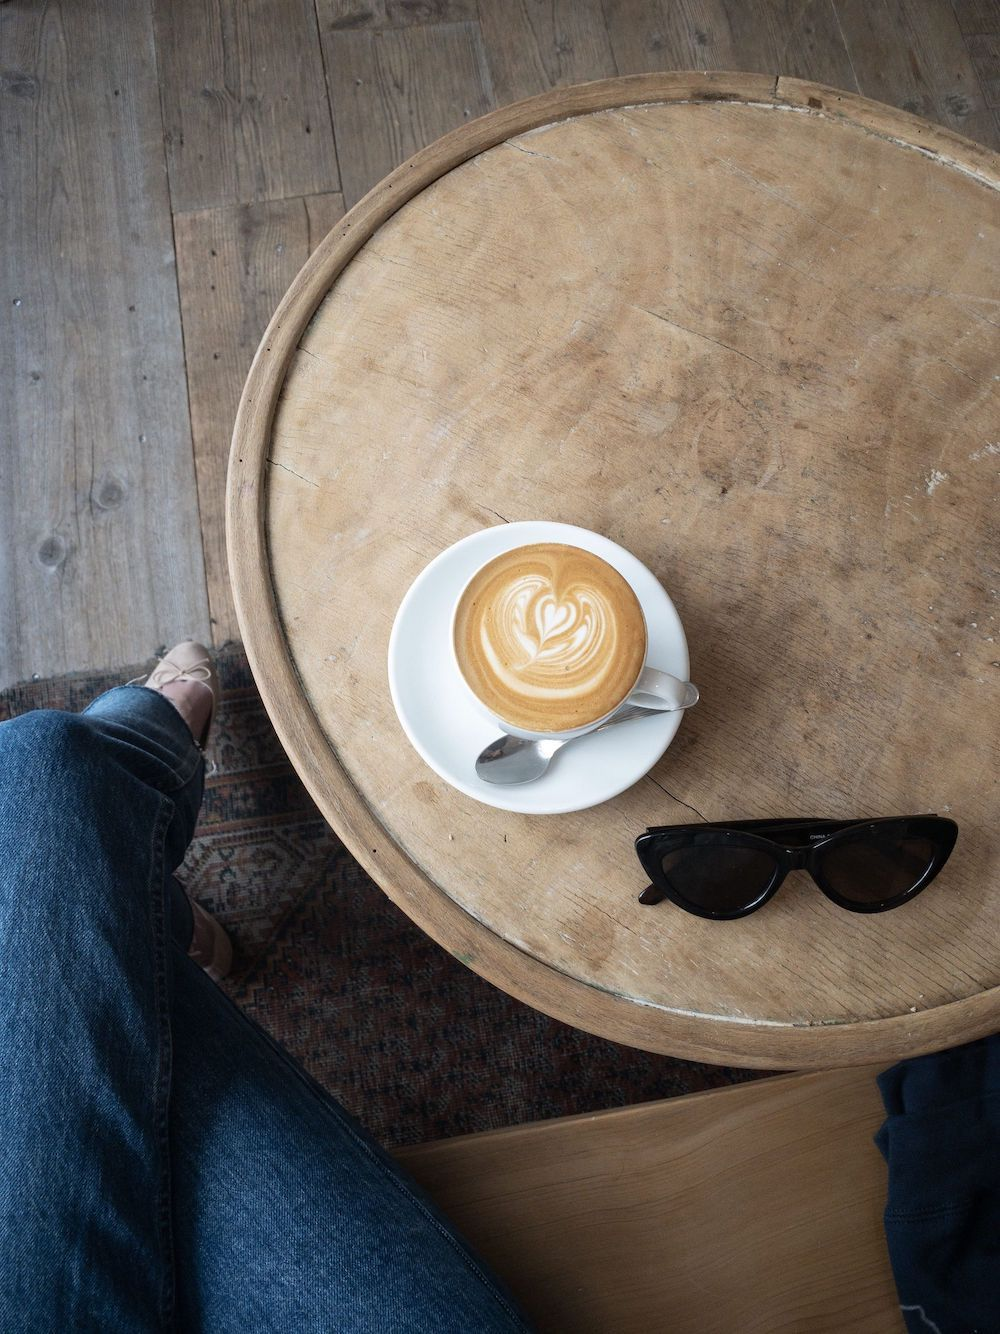 Dreamin Man Café in the 11th arrondissement for specialty coffee and third wave coffee in Paris